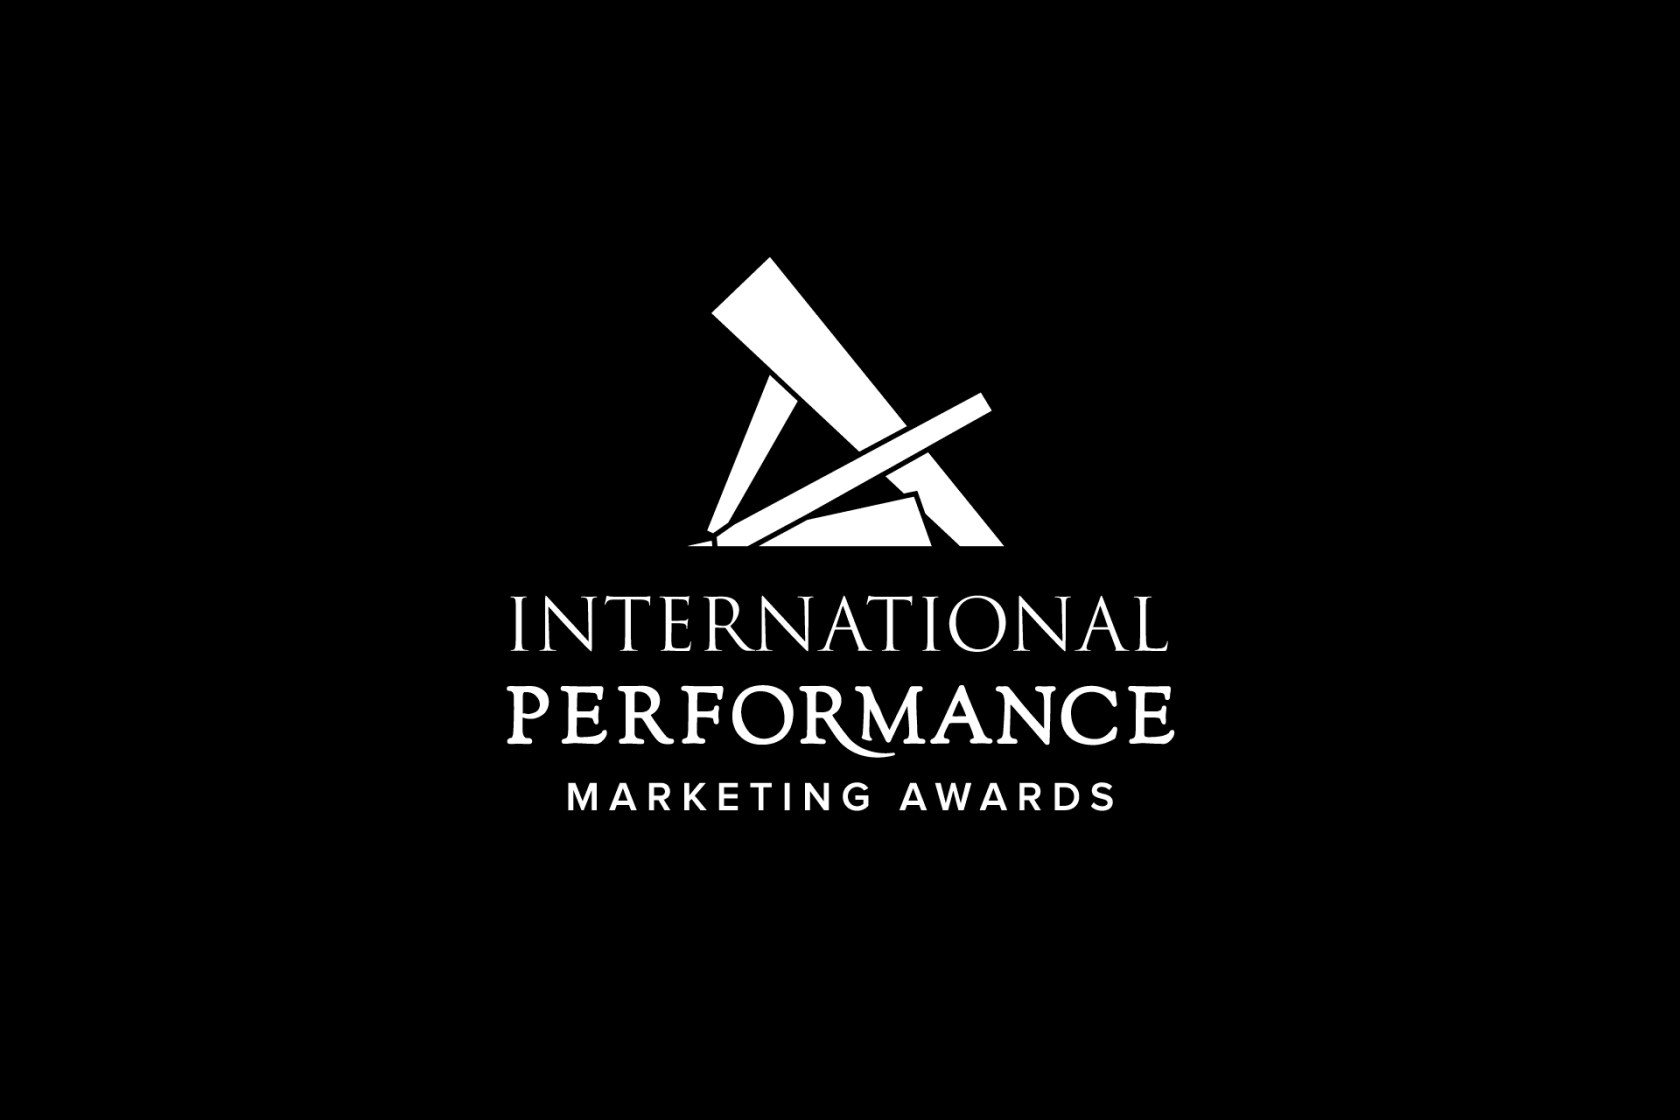 404 u finalu International Performance Marketing Awardsa!